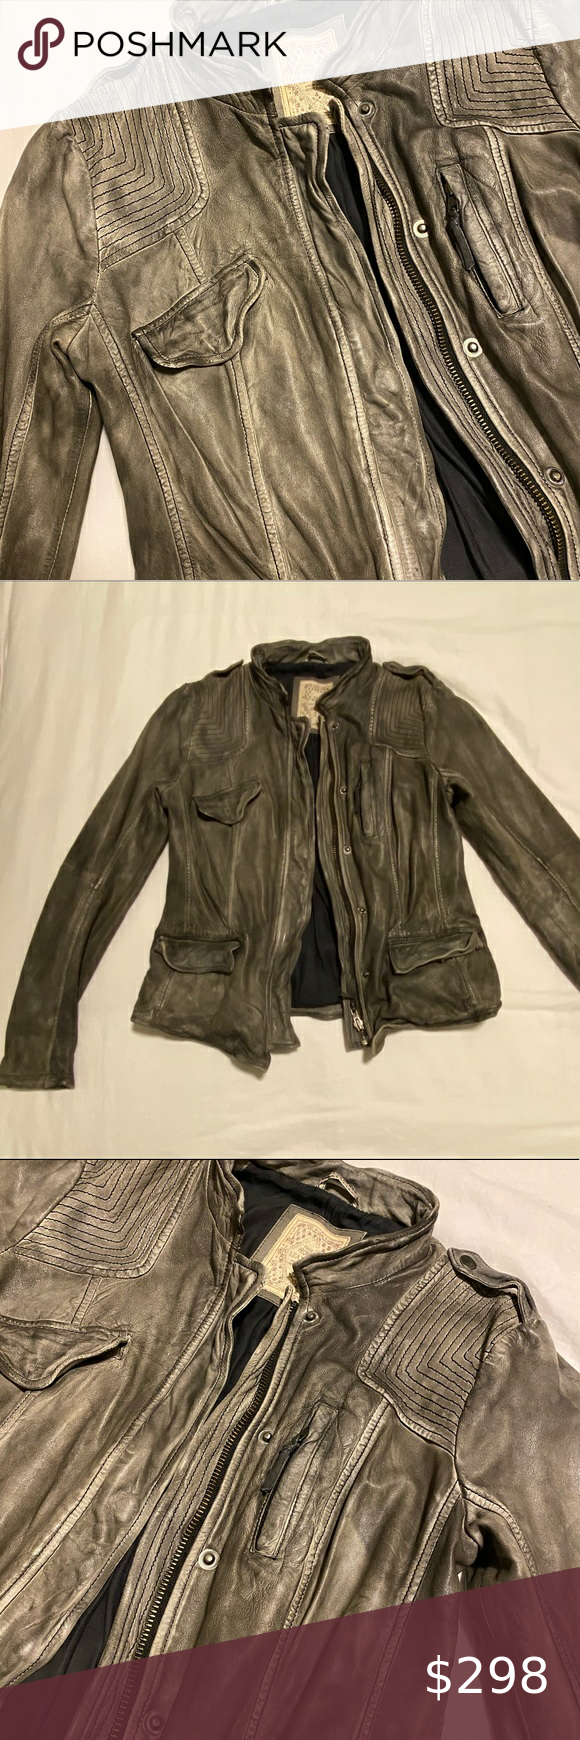 Fitted Rugged Leather Jacket In 2020 Rugged Leather Leather Jacket Jackets